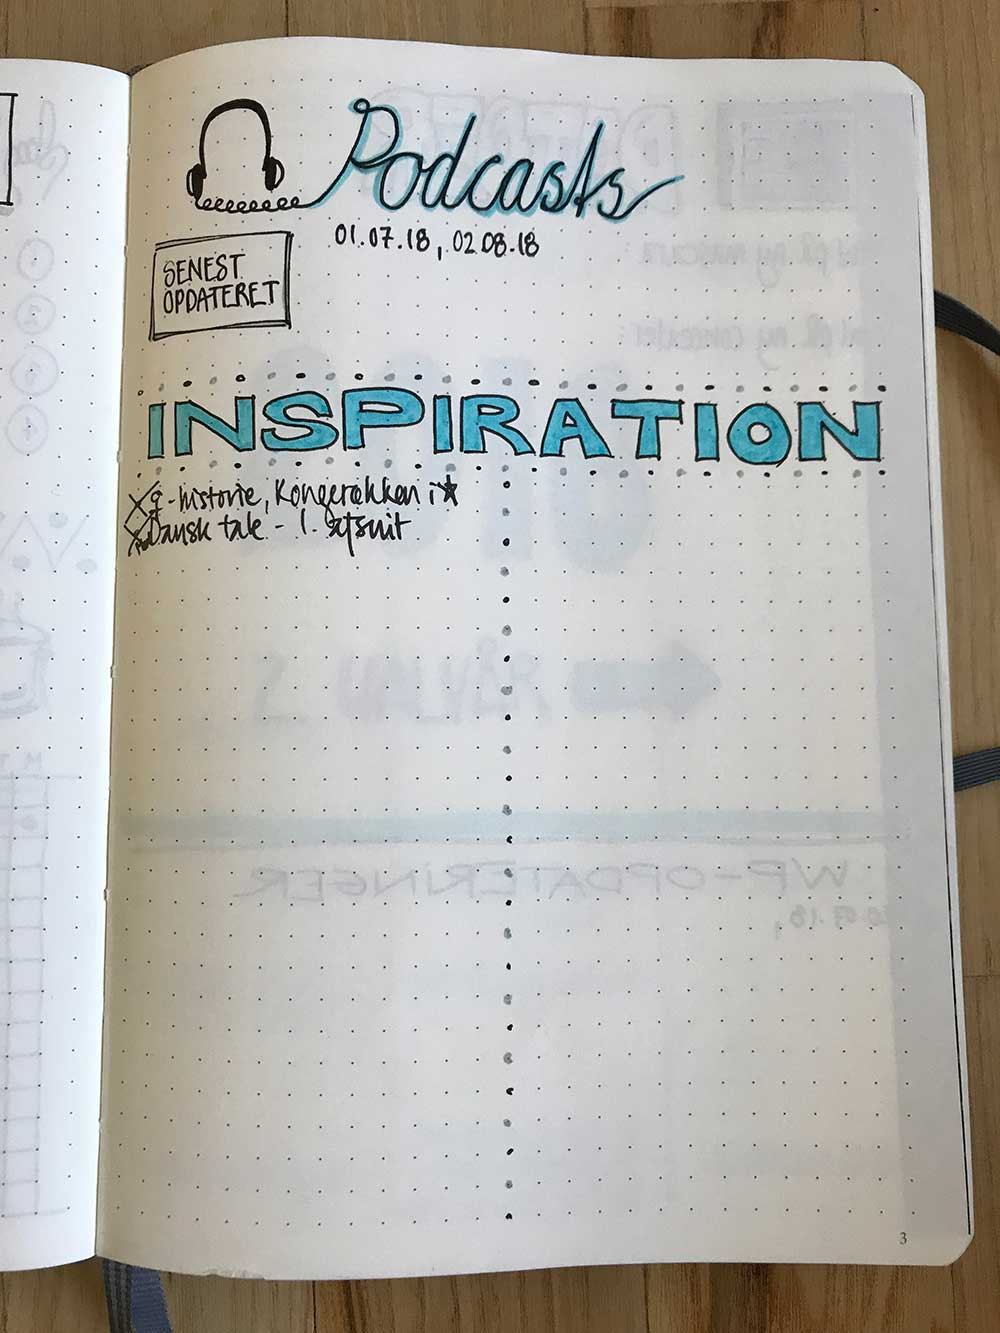 BulletJournal: Podcast-inspiration